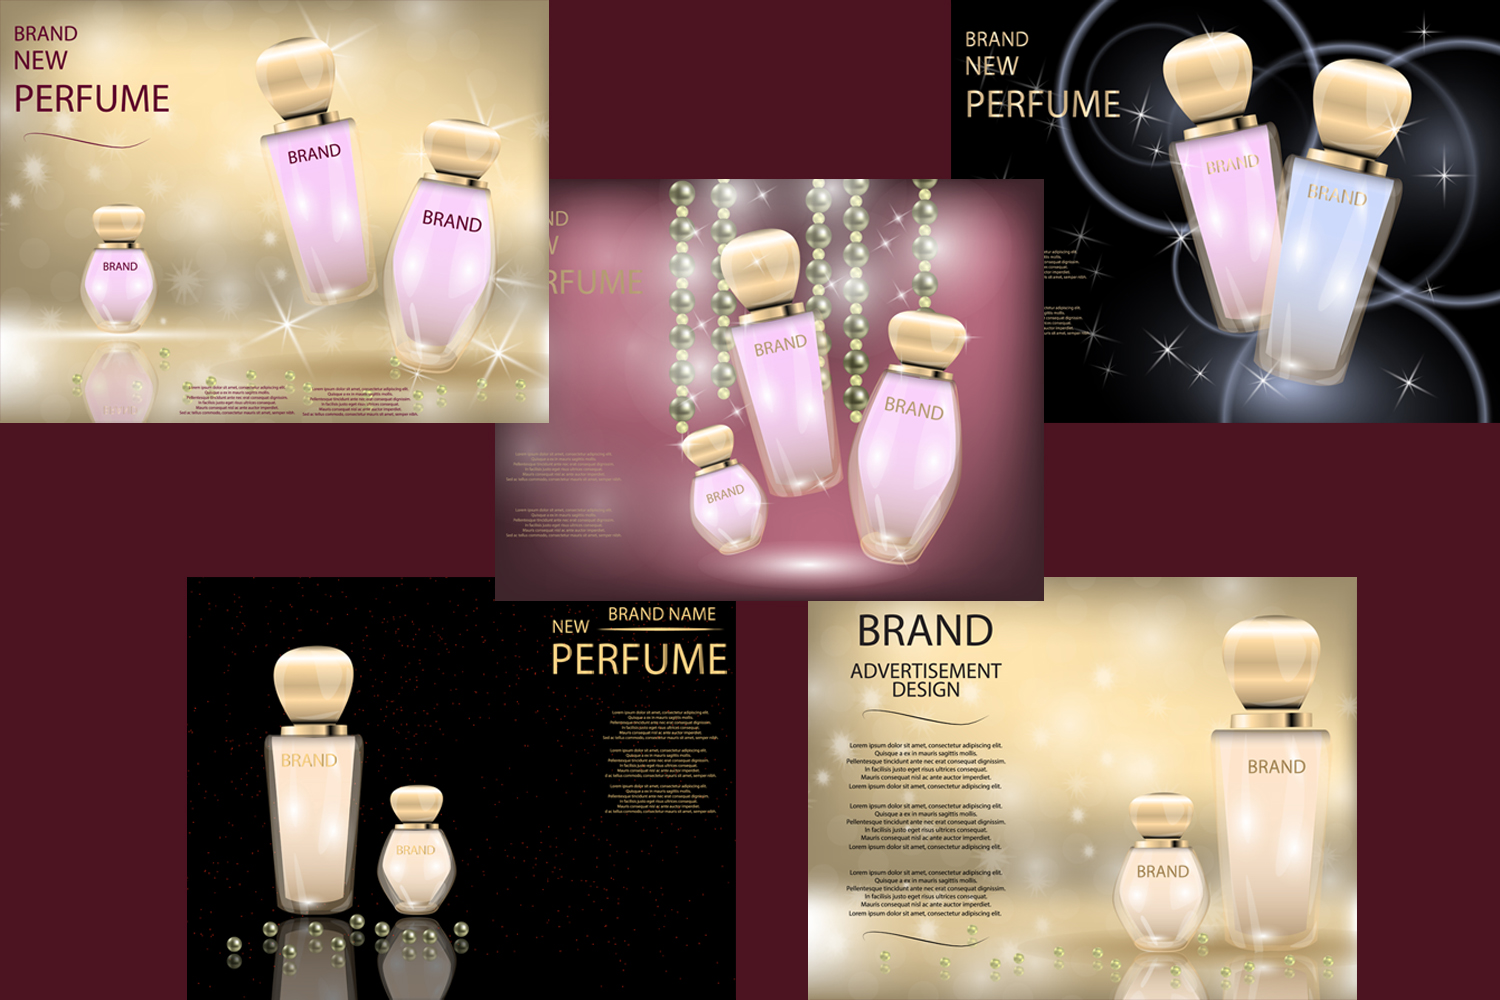 Glamorous Perfume Glass Bottles  Mock-up, 3D Realistic Vector Illustration, Template example image 1